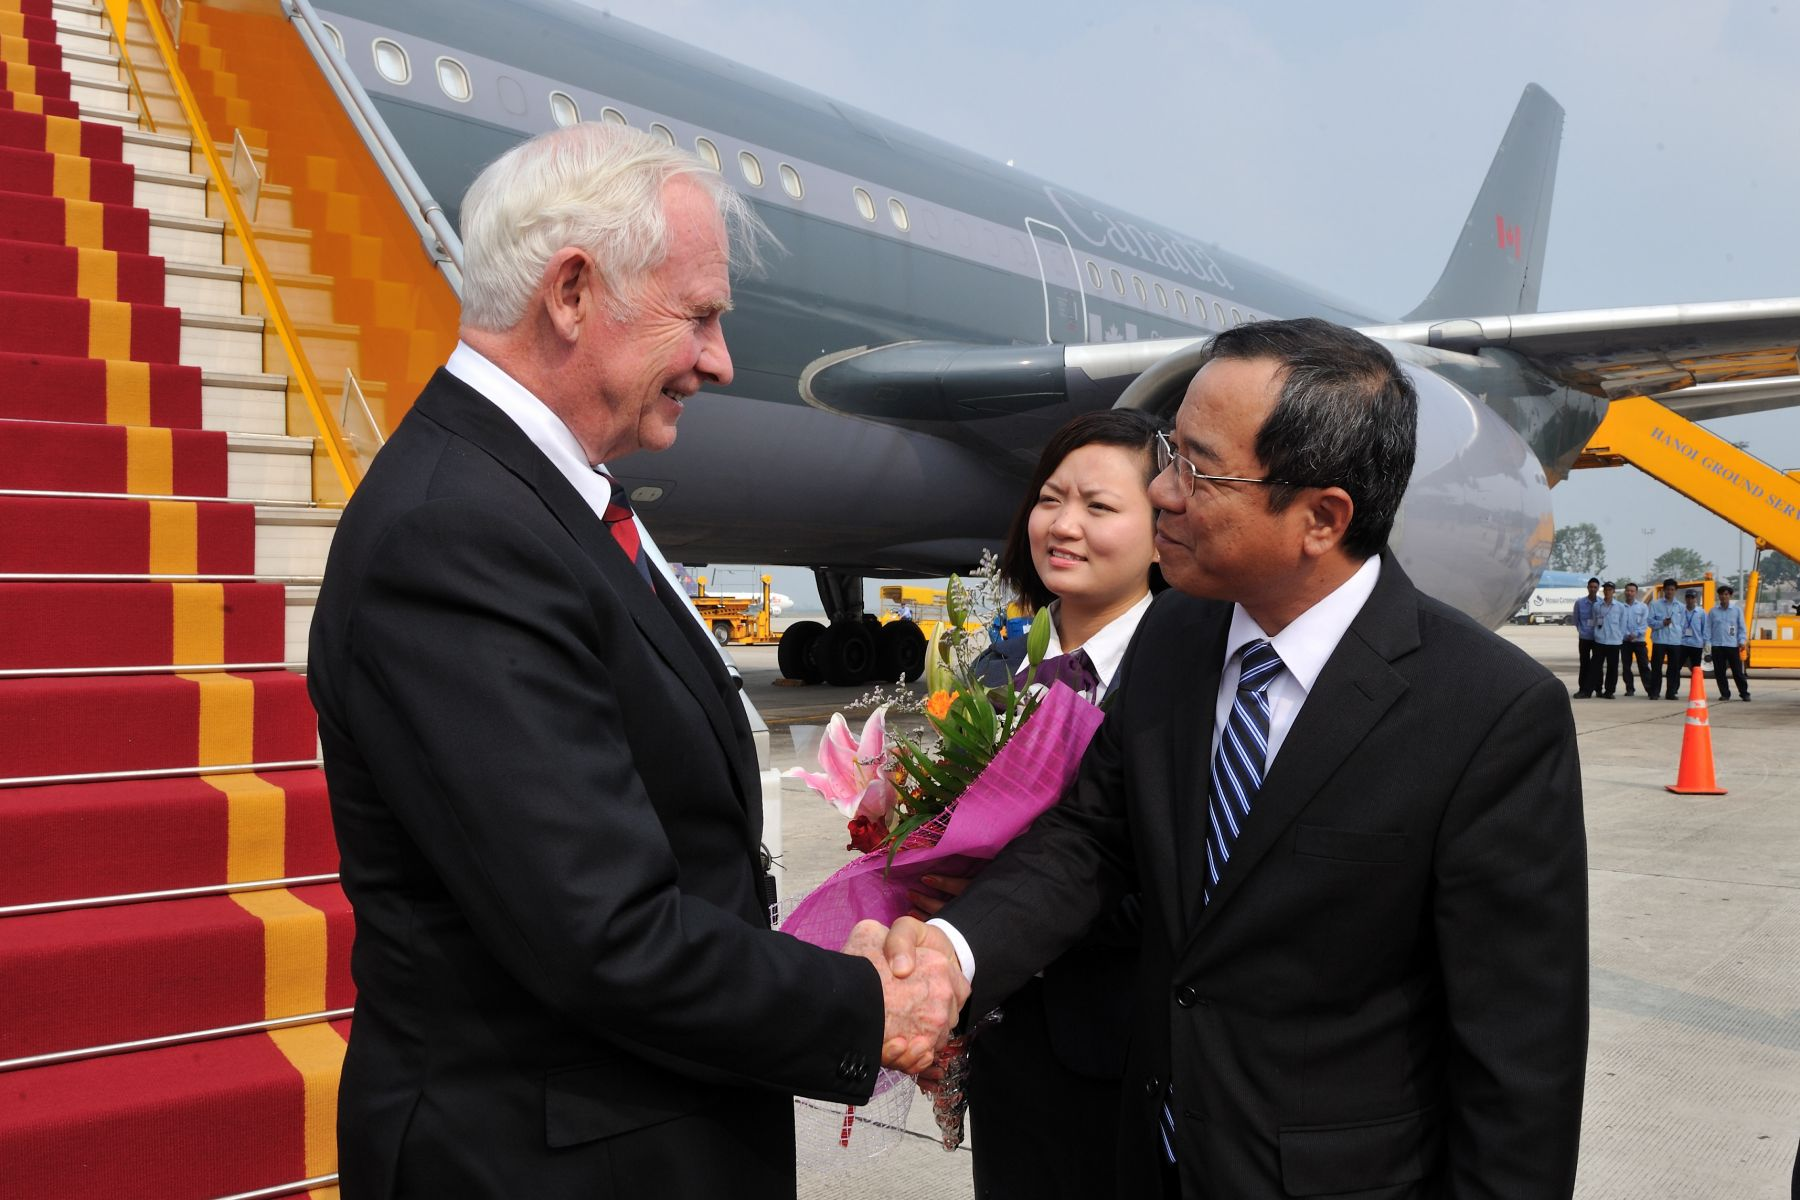 Upon his arrival in Hanoi, His Excellency was welcomed by His Excellency Dao Viet Trung, Chairman of the President's Office.